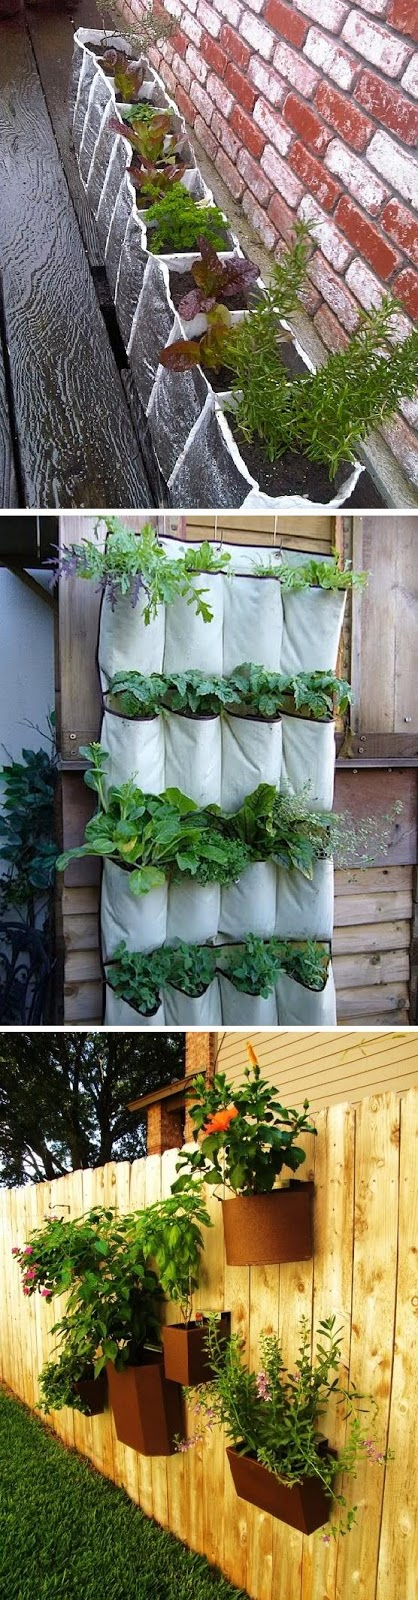 Herb garden inspiration and ideas for Garden inspiration ideas